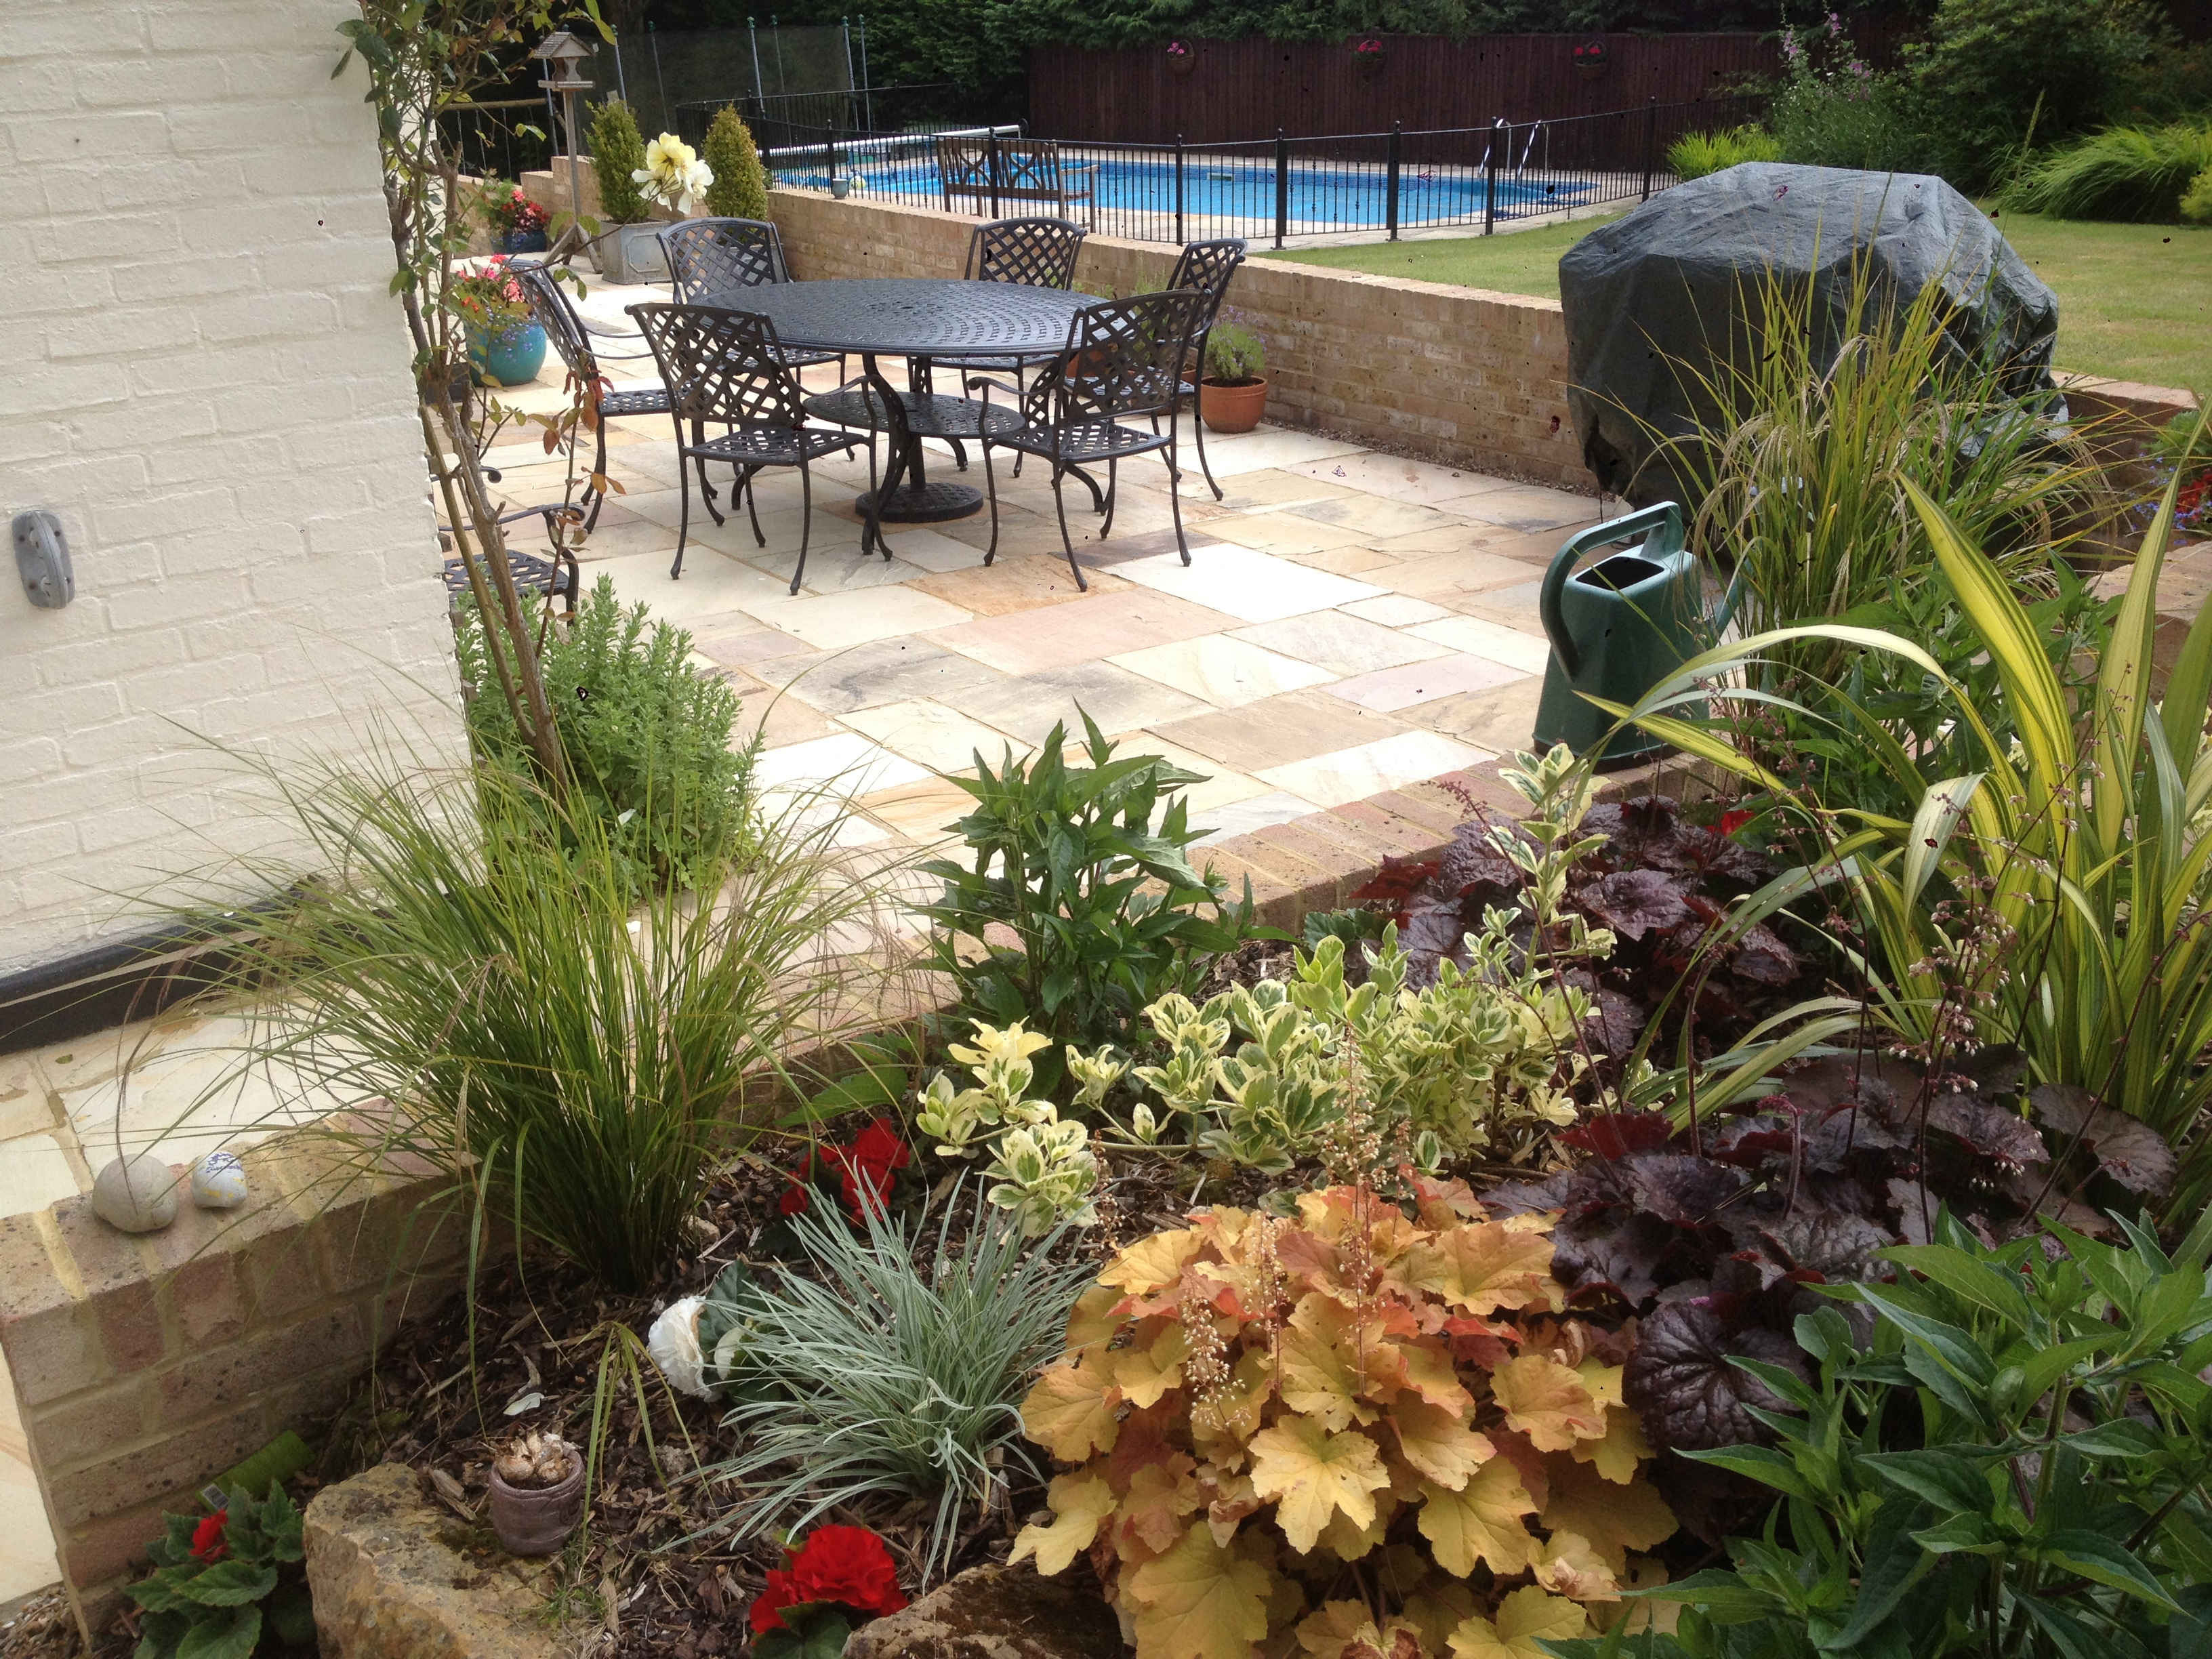 Garden designed in horsham area with pool, patio and new planting